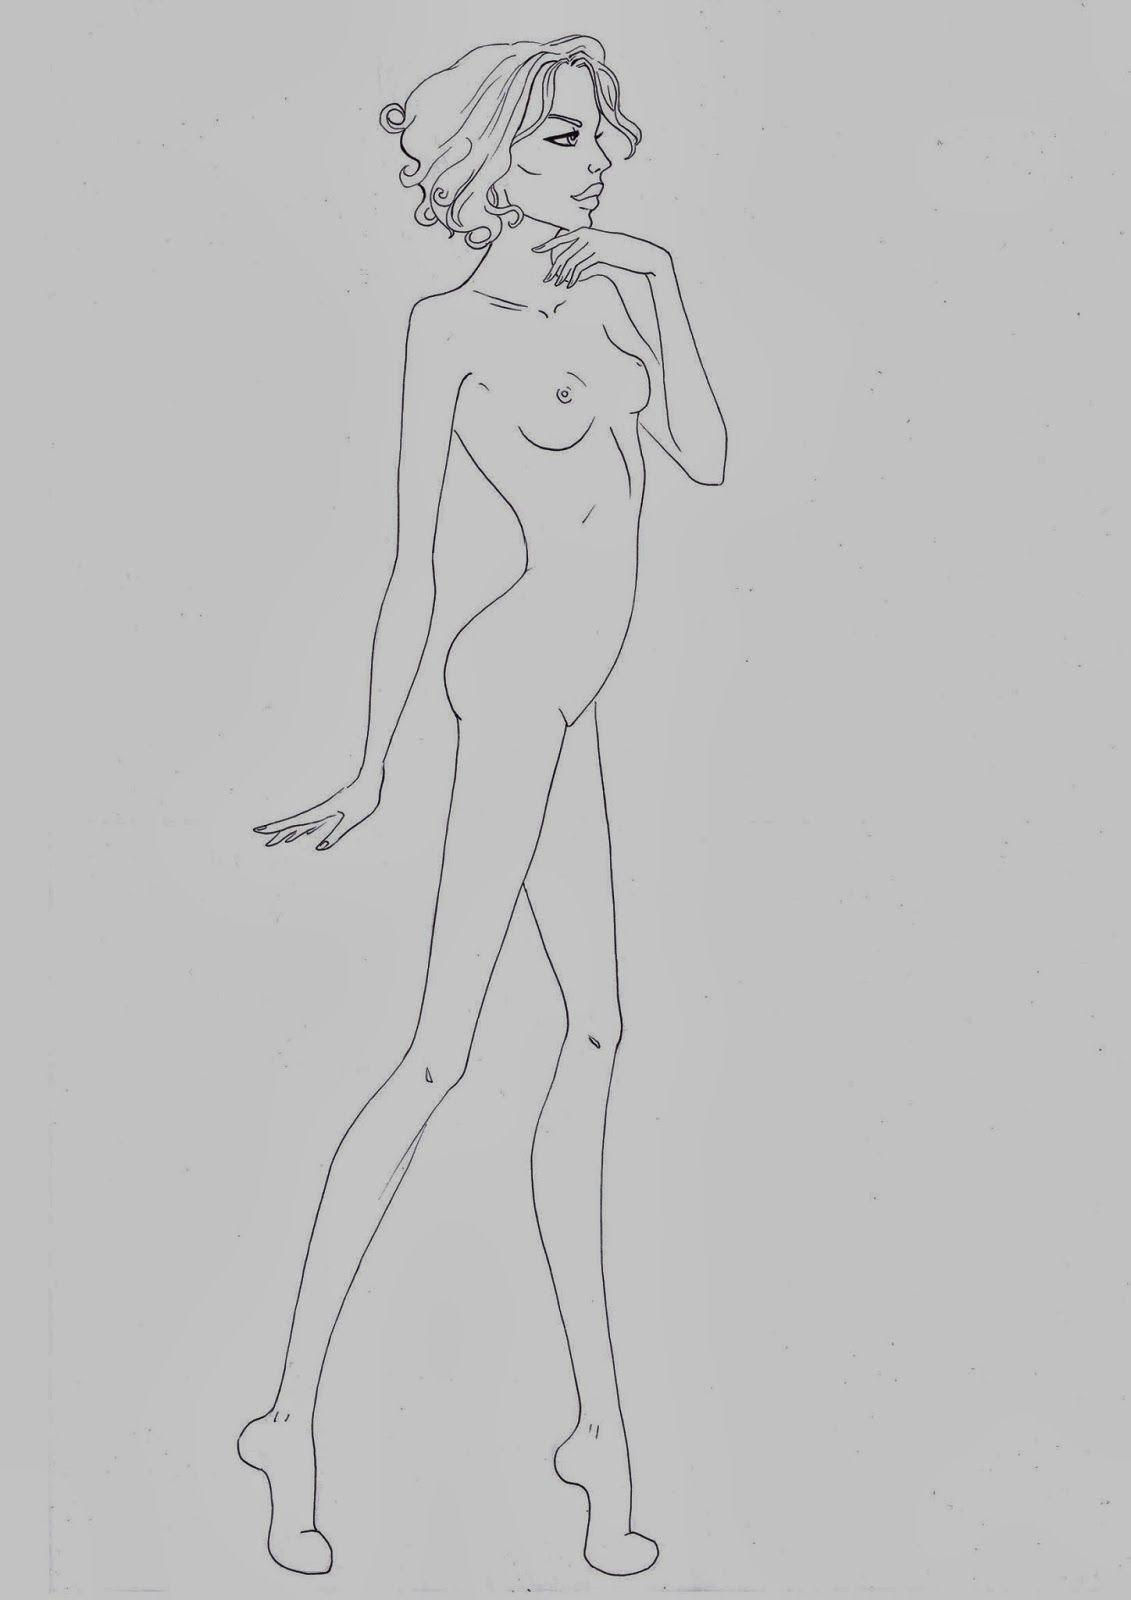 Pin by Jaqi Jobe on sketches | Pinterest | Croquis and Sketches